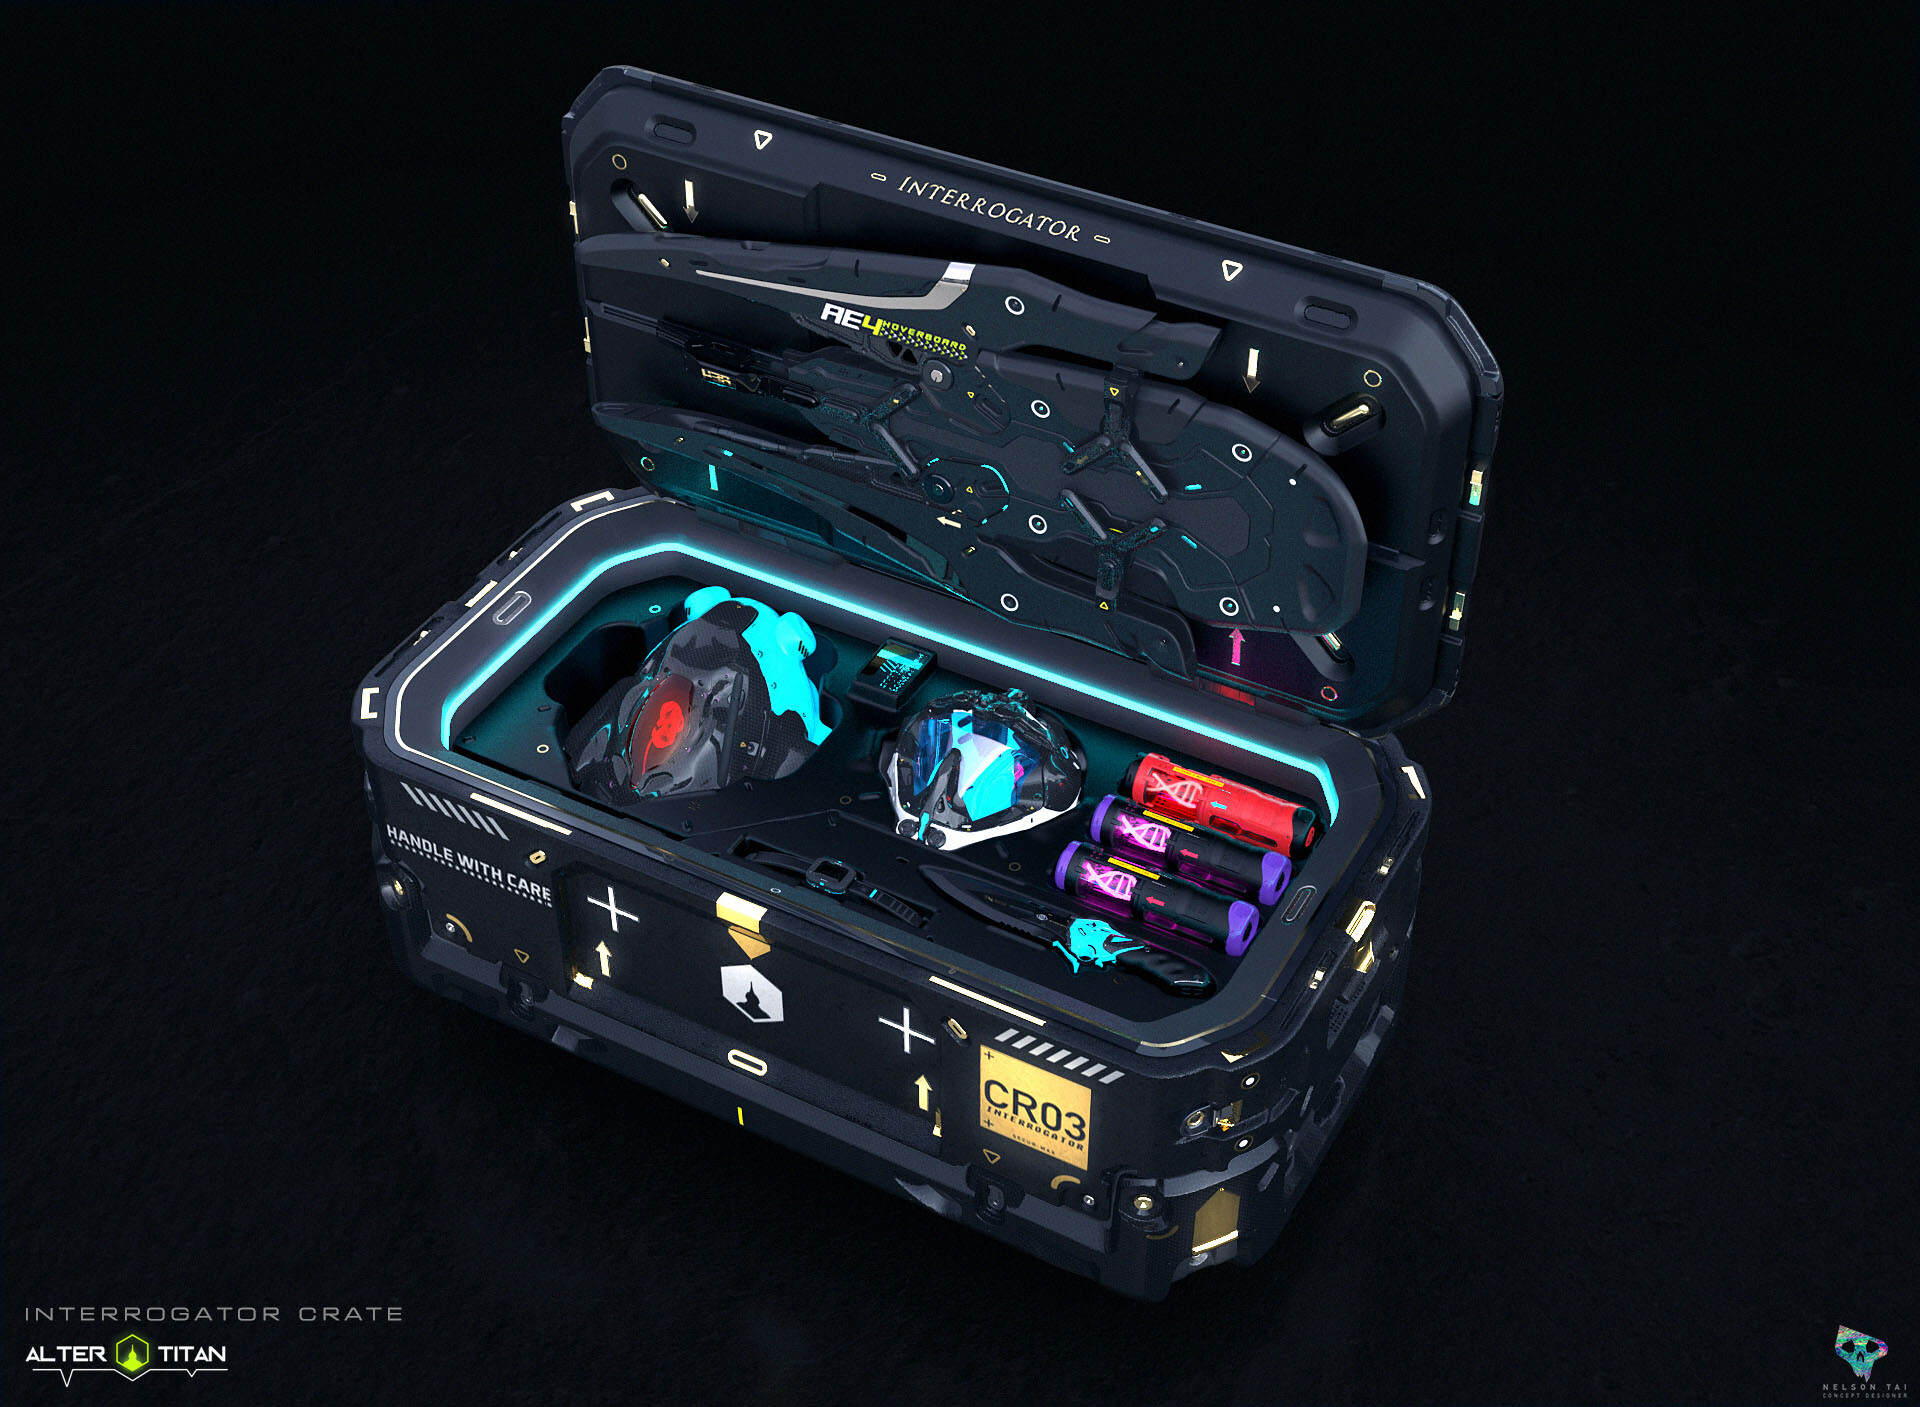 The ultimate Interrogator's crate! Comes with all the goodies :)